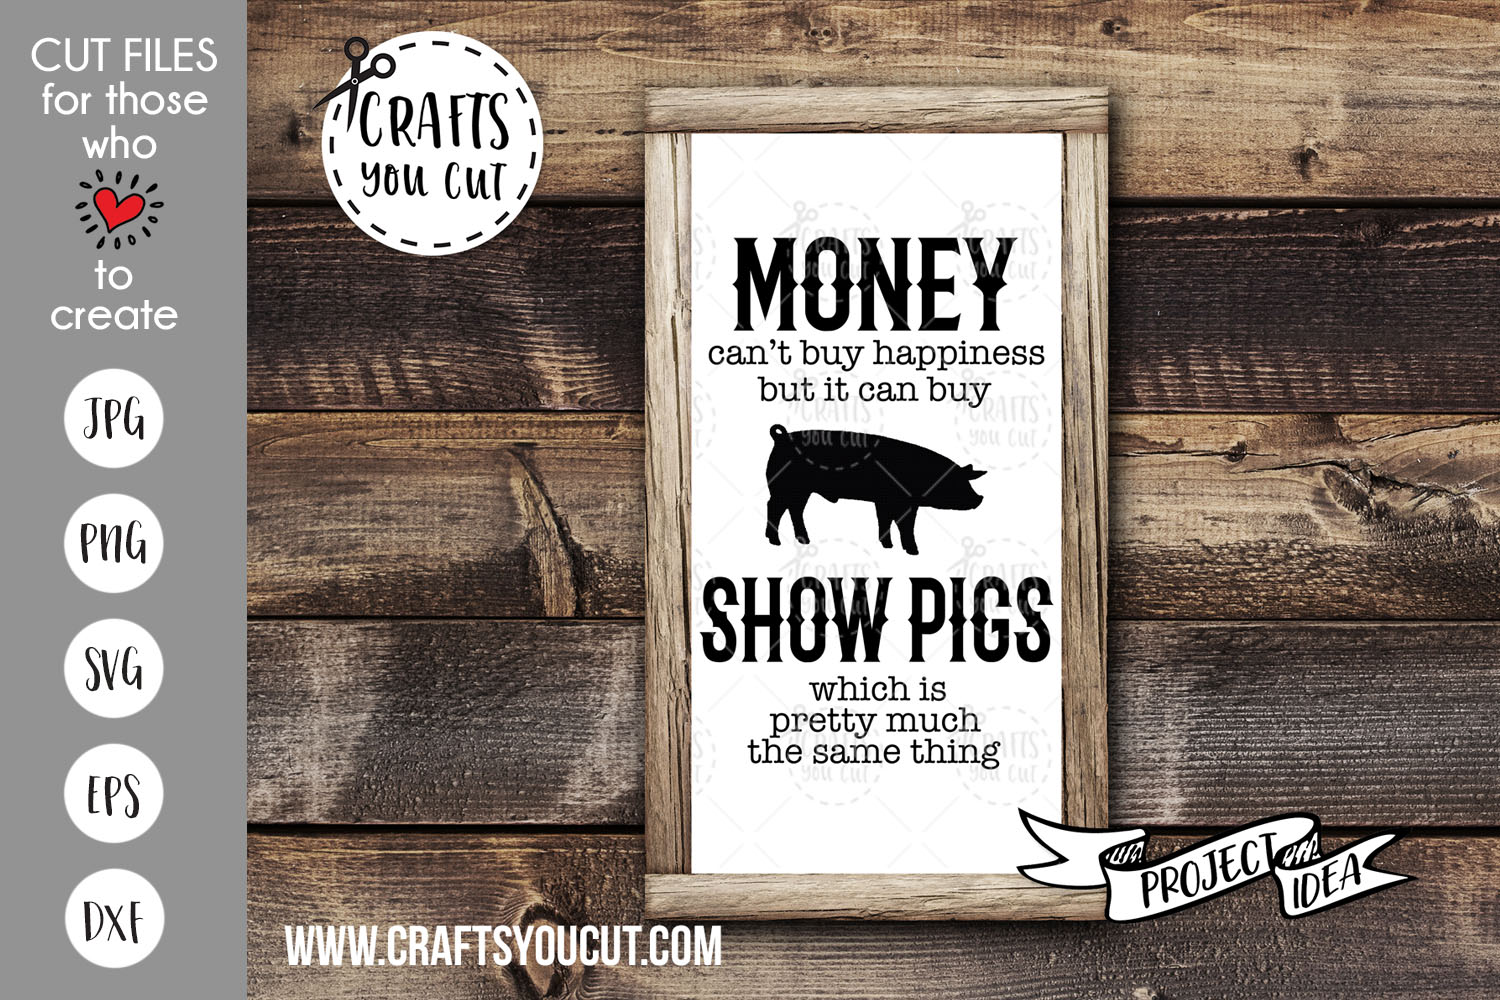 Download Money Can't Buy Happiness But It Can Buy Show Pigs - SVG Cut